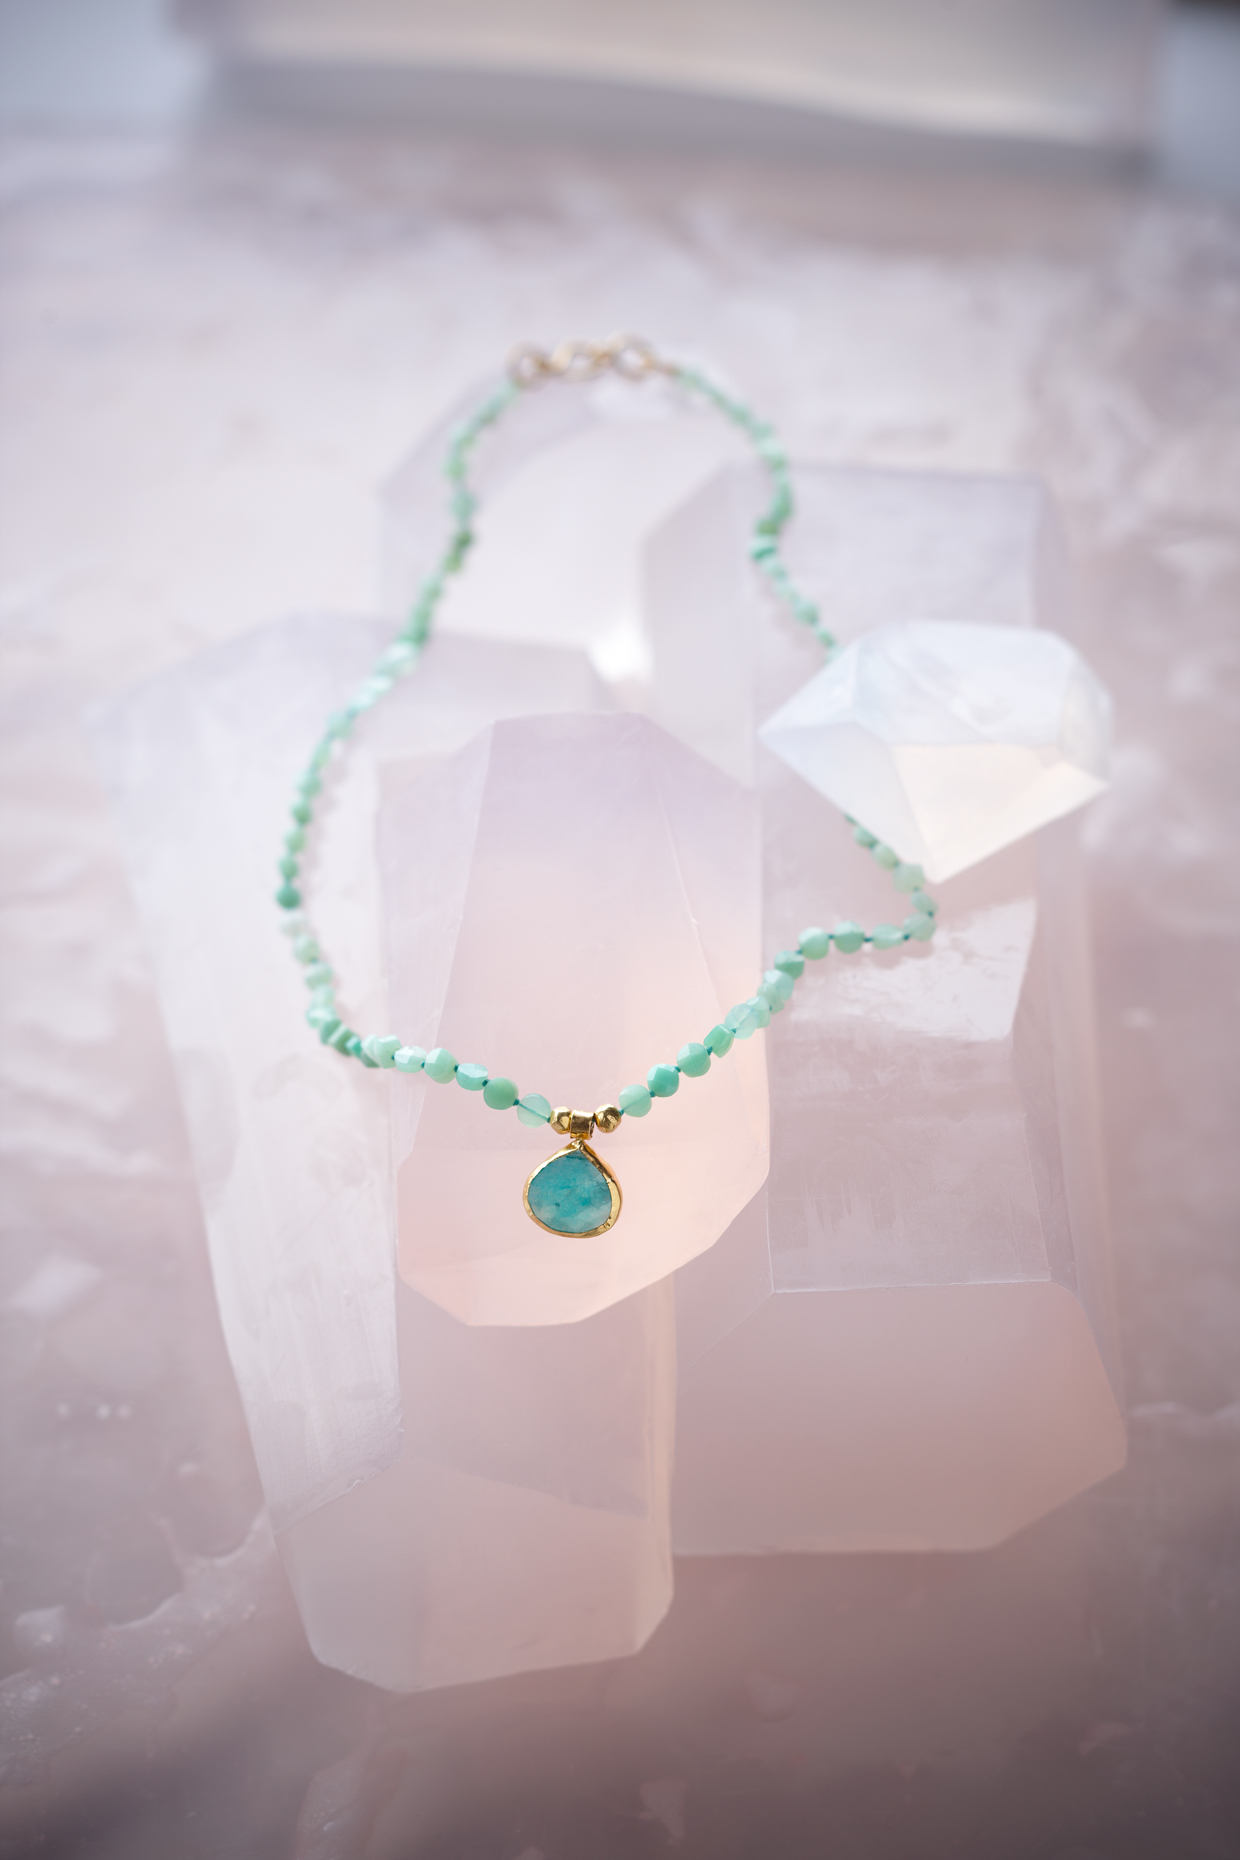 Product photography Jewelry Derek Israelsen Turquoise on Crystal